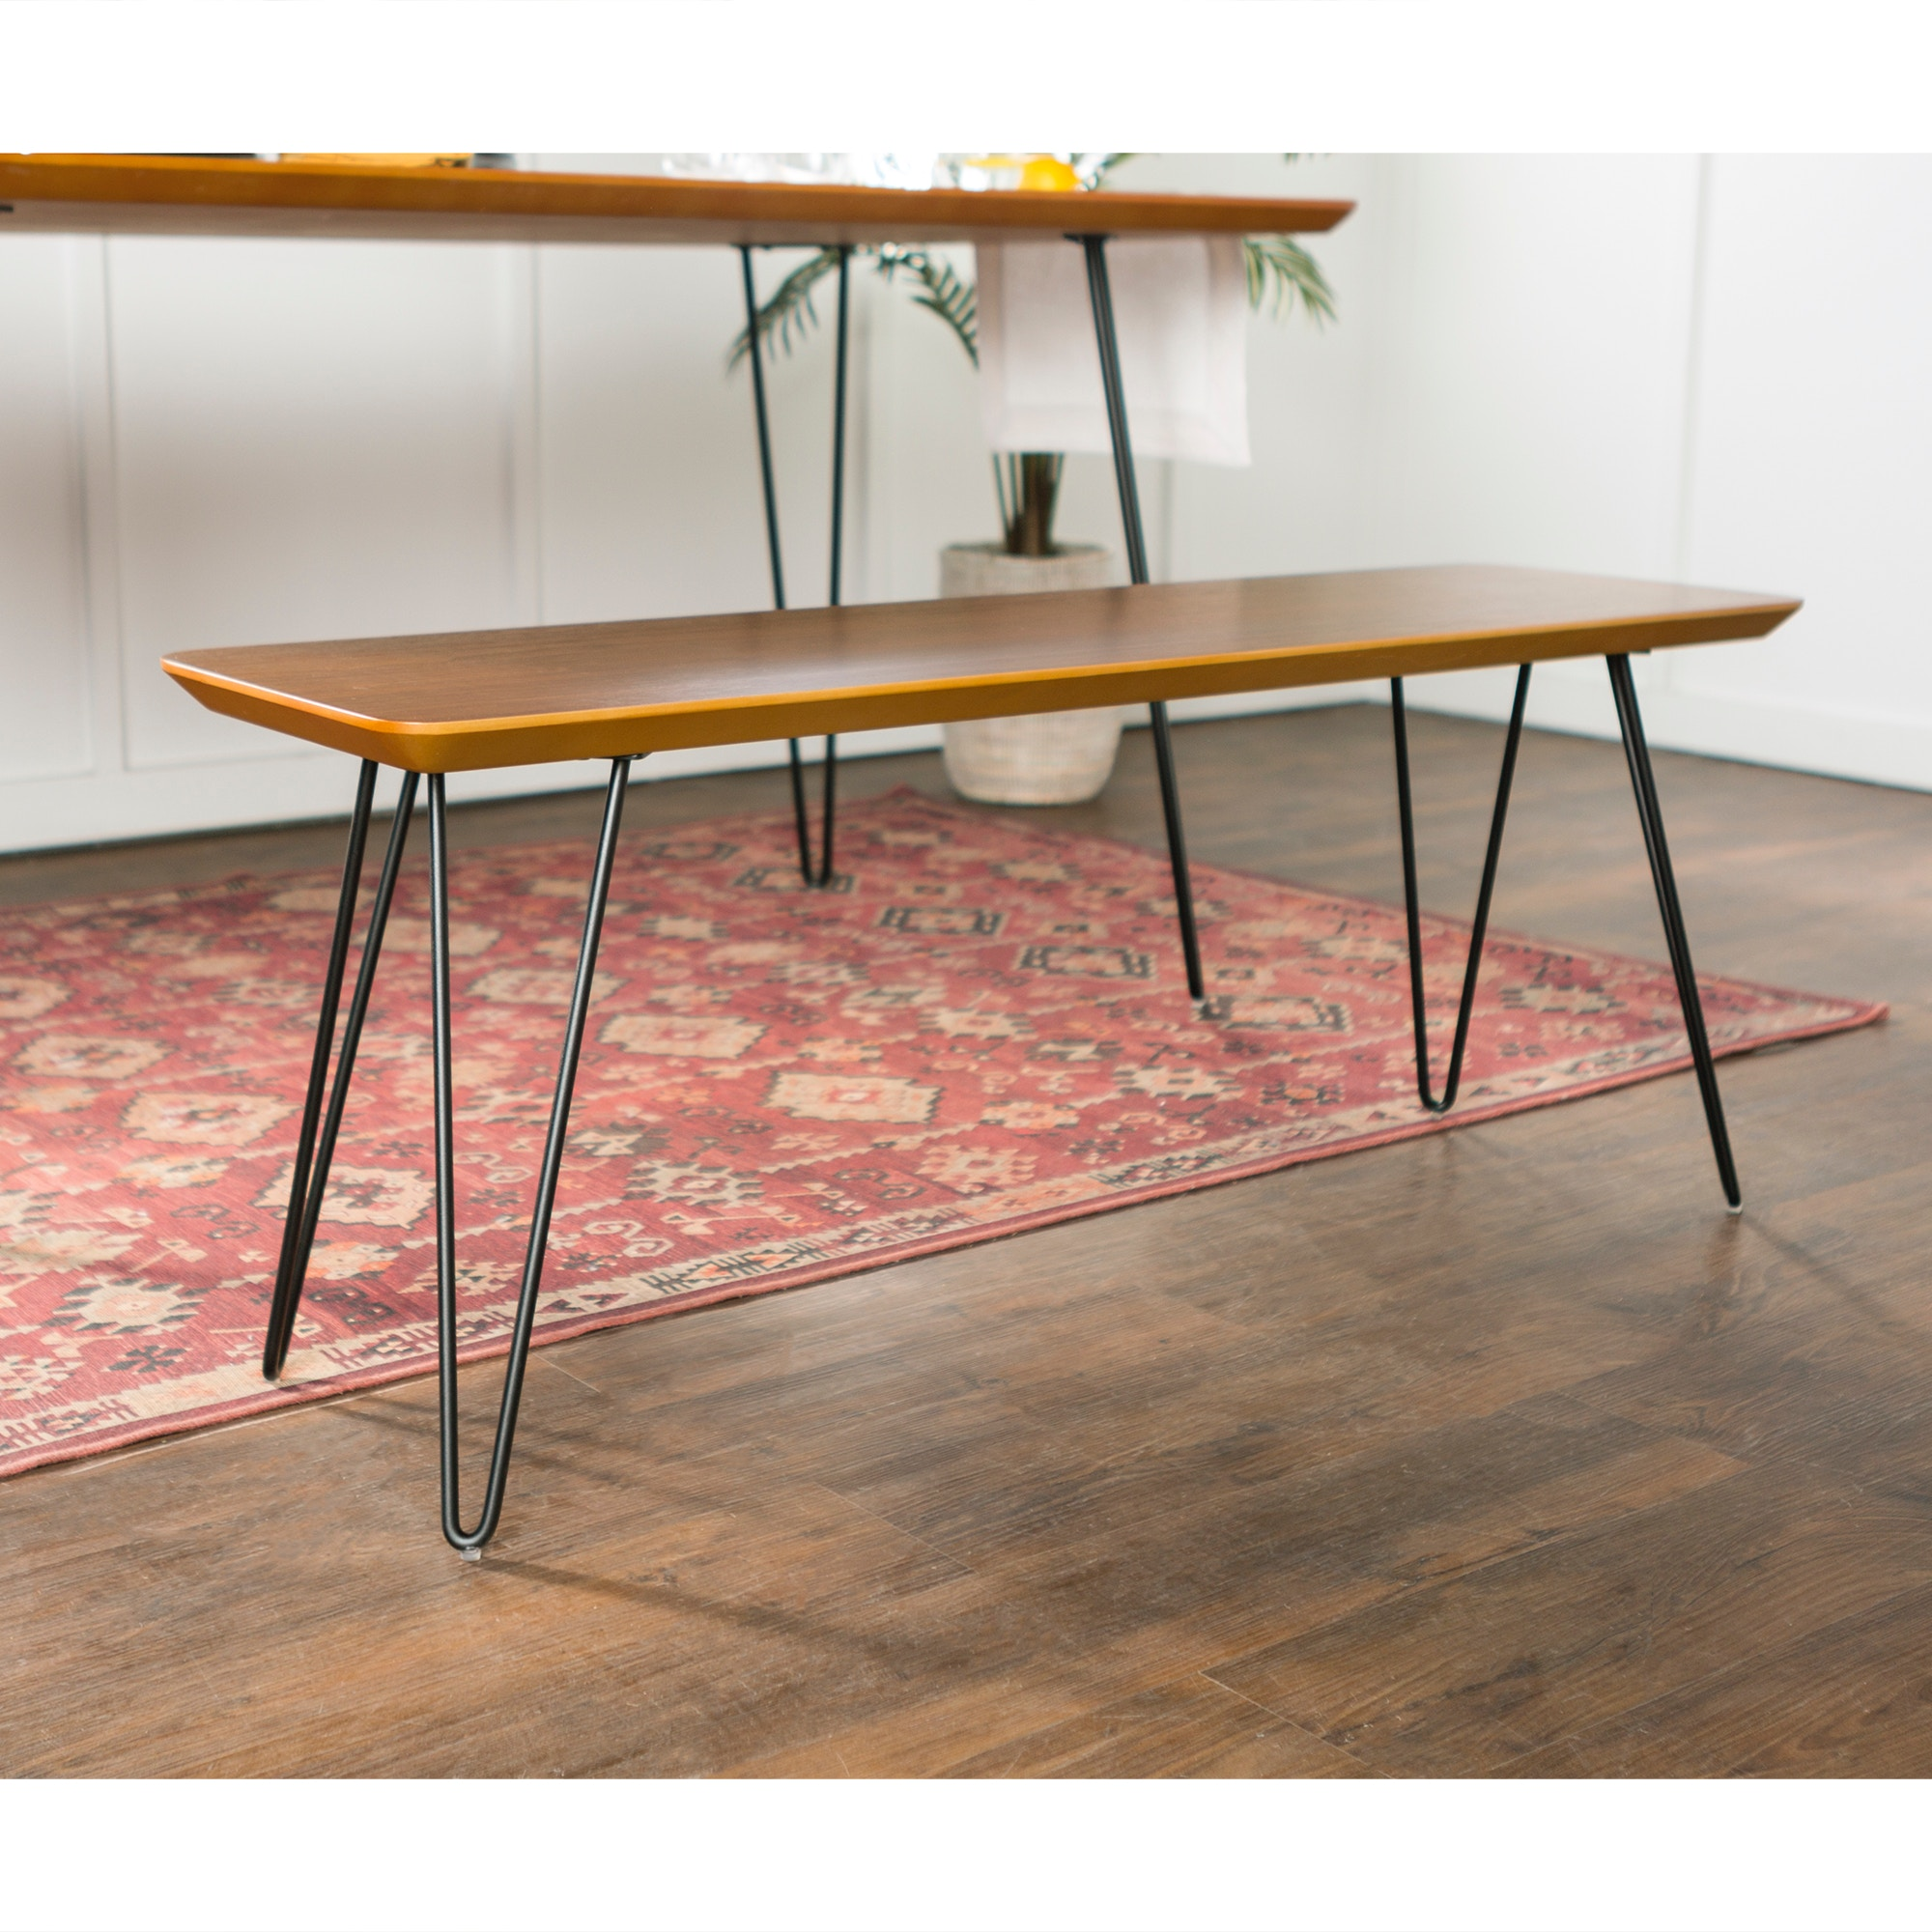 Exceptionnel Ft Myers Mid Century Modern Hairpin Entryway Dining Bench WEDDB56HPDWT From  Walter E. Smithe Furniture